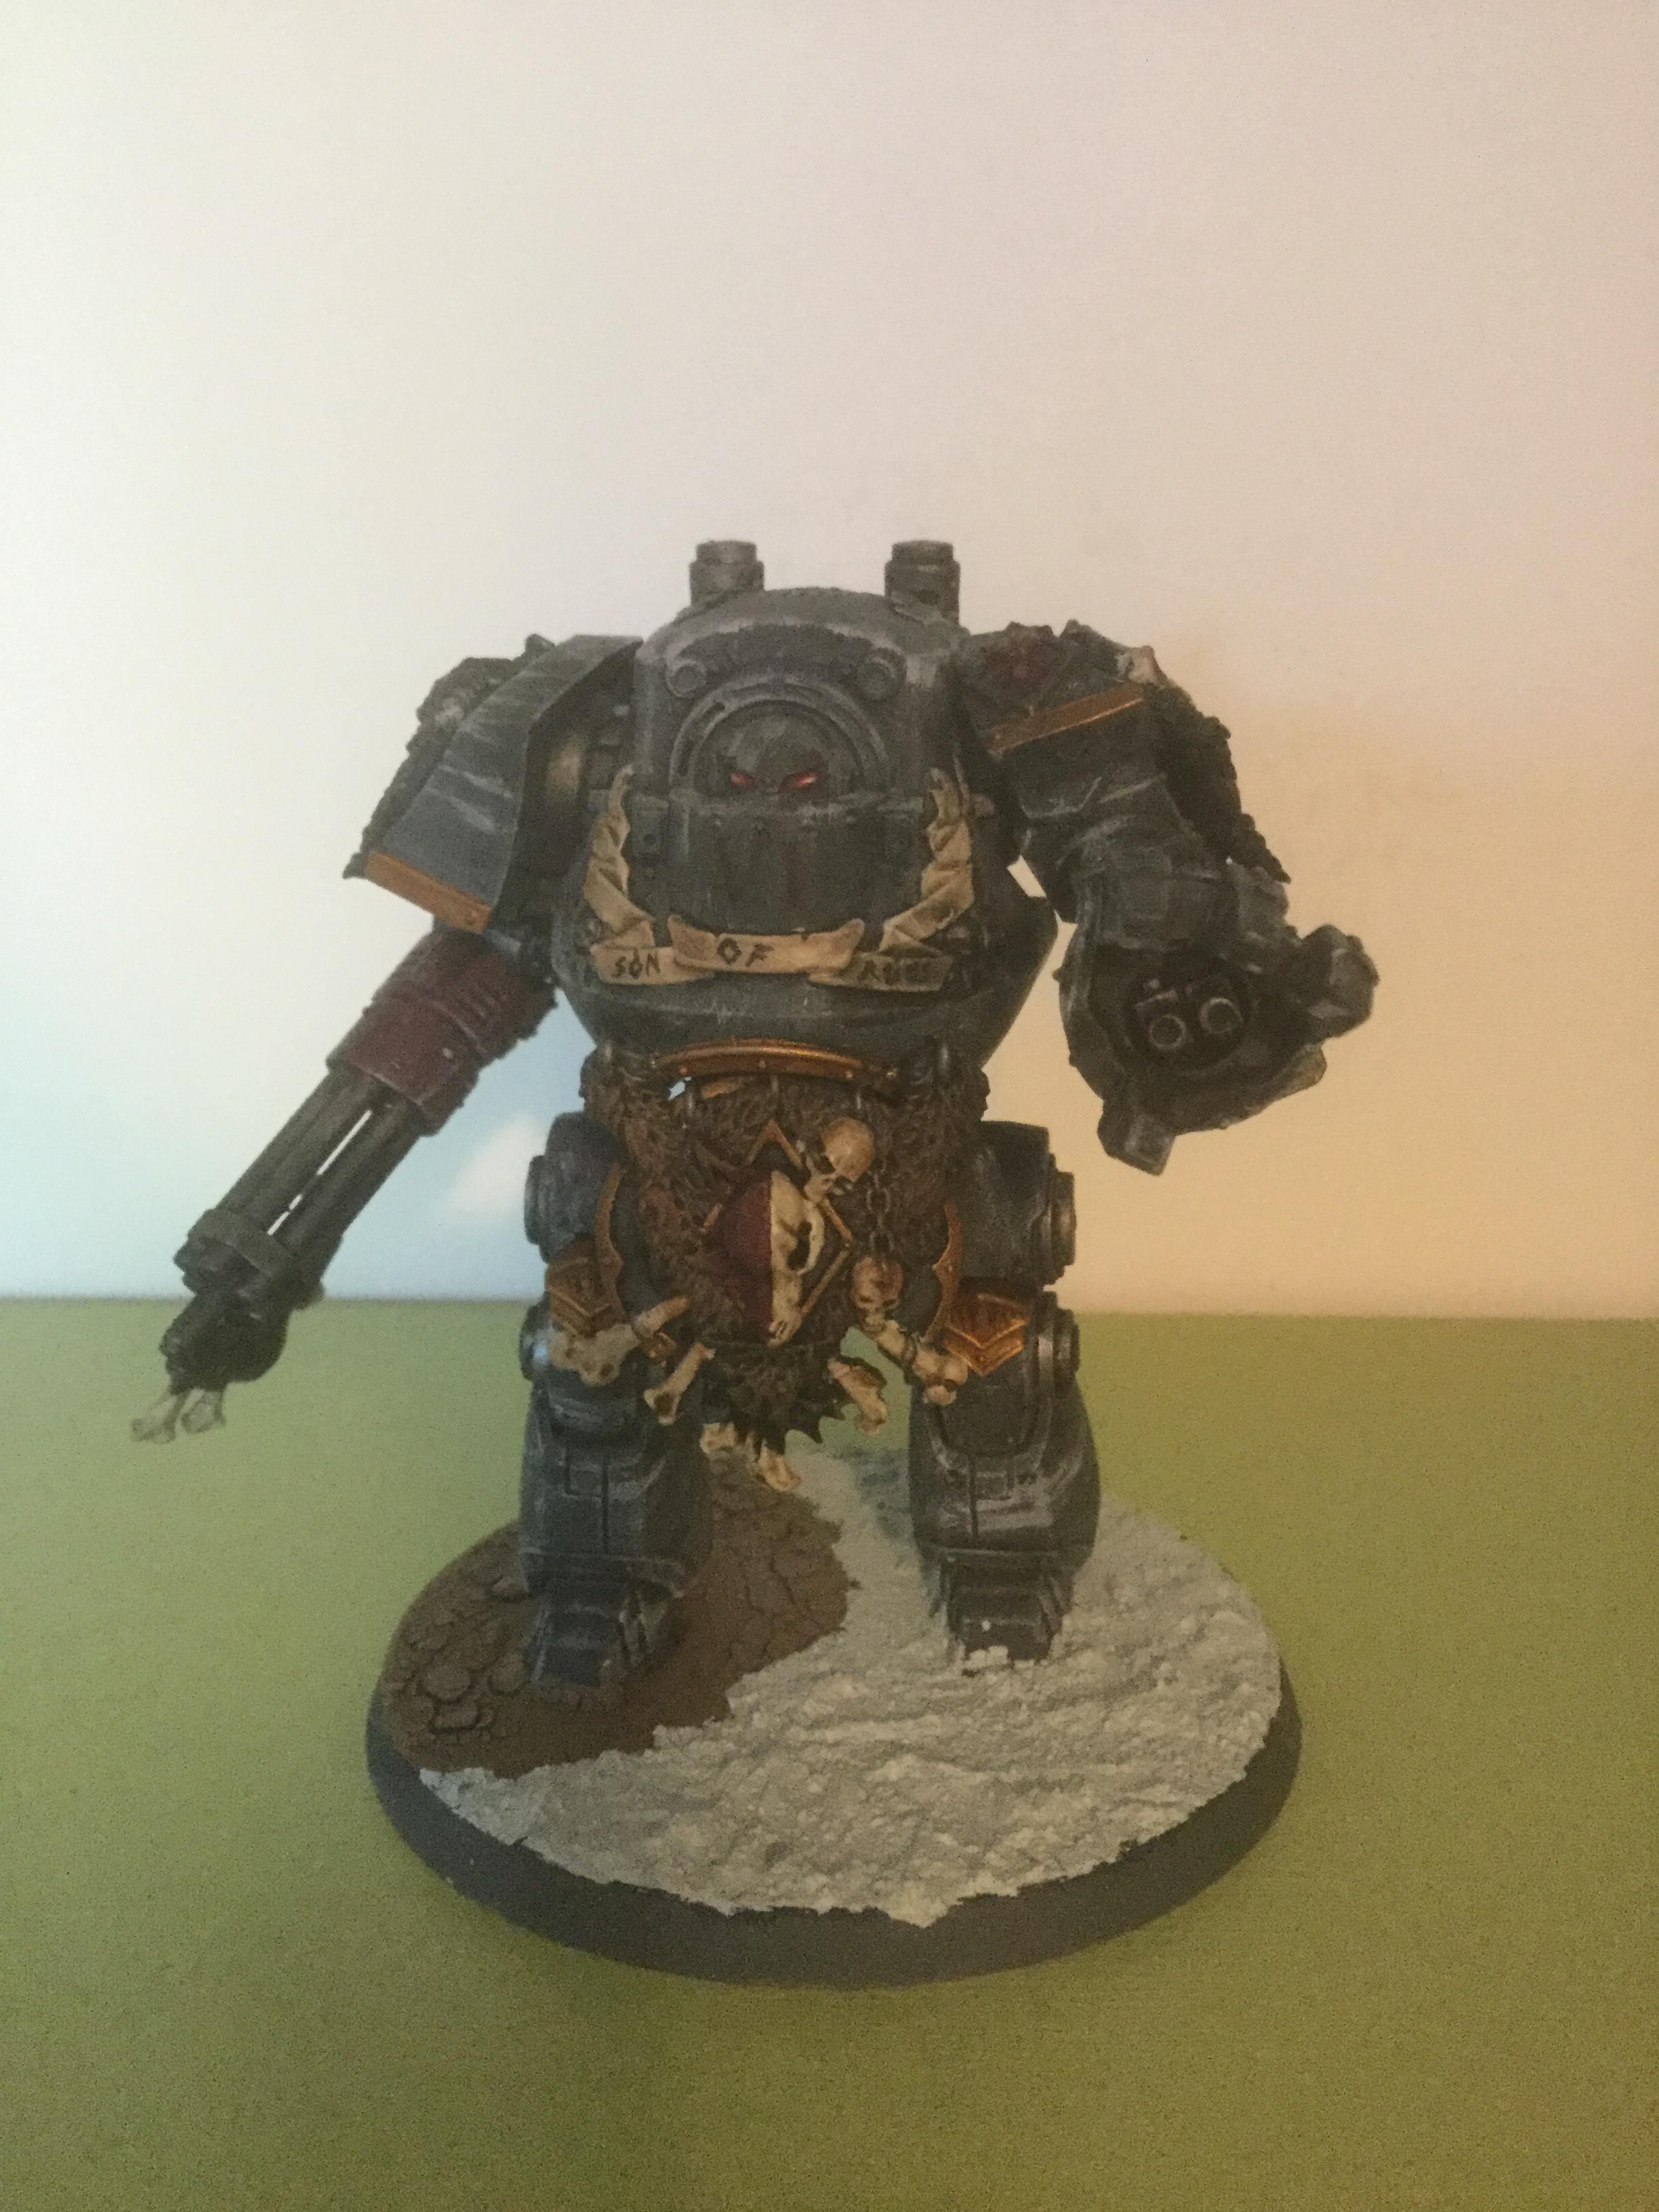 30k, Contemptor Dreadnought, Space Wolves